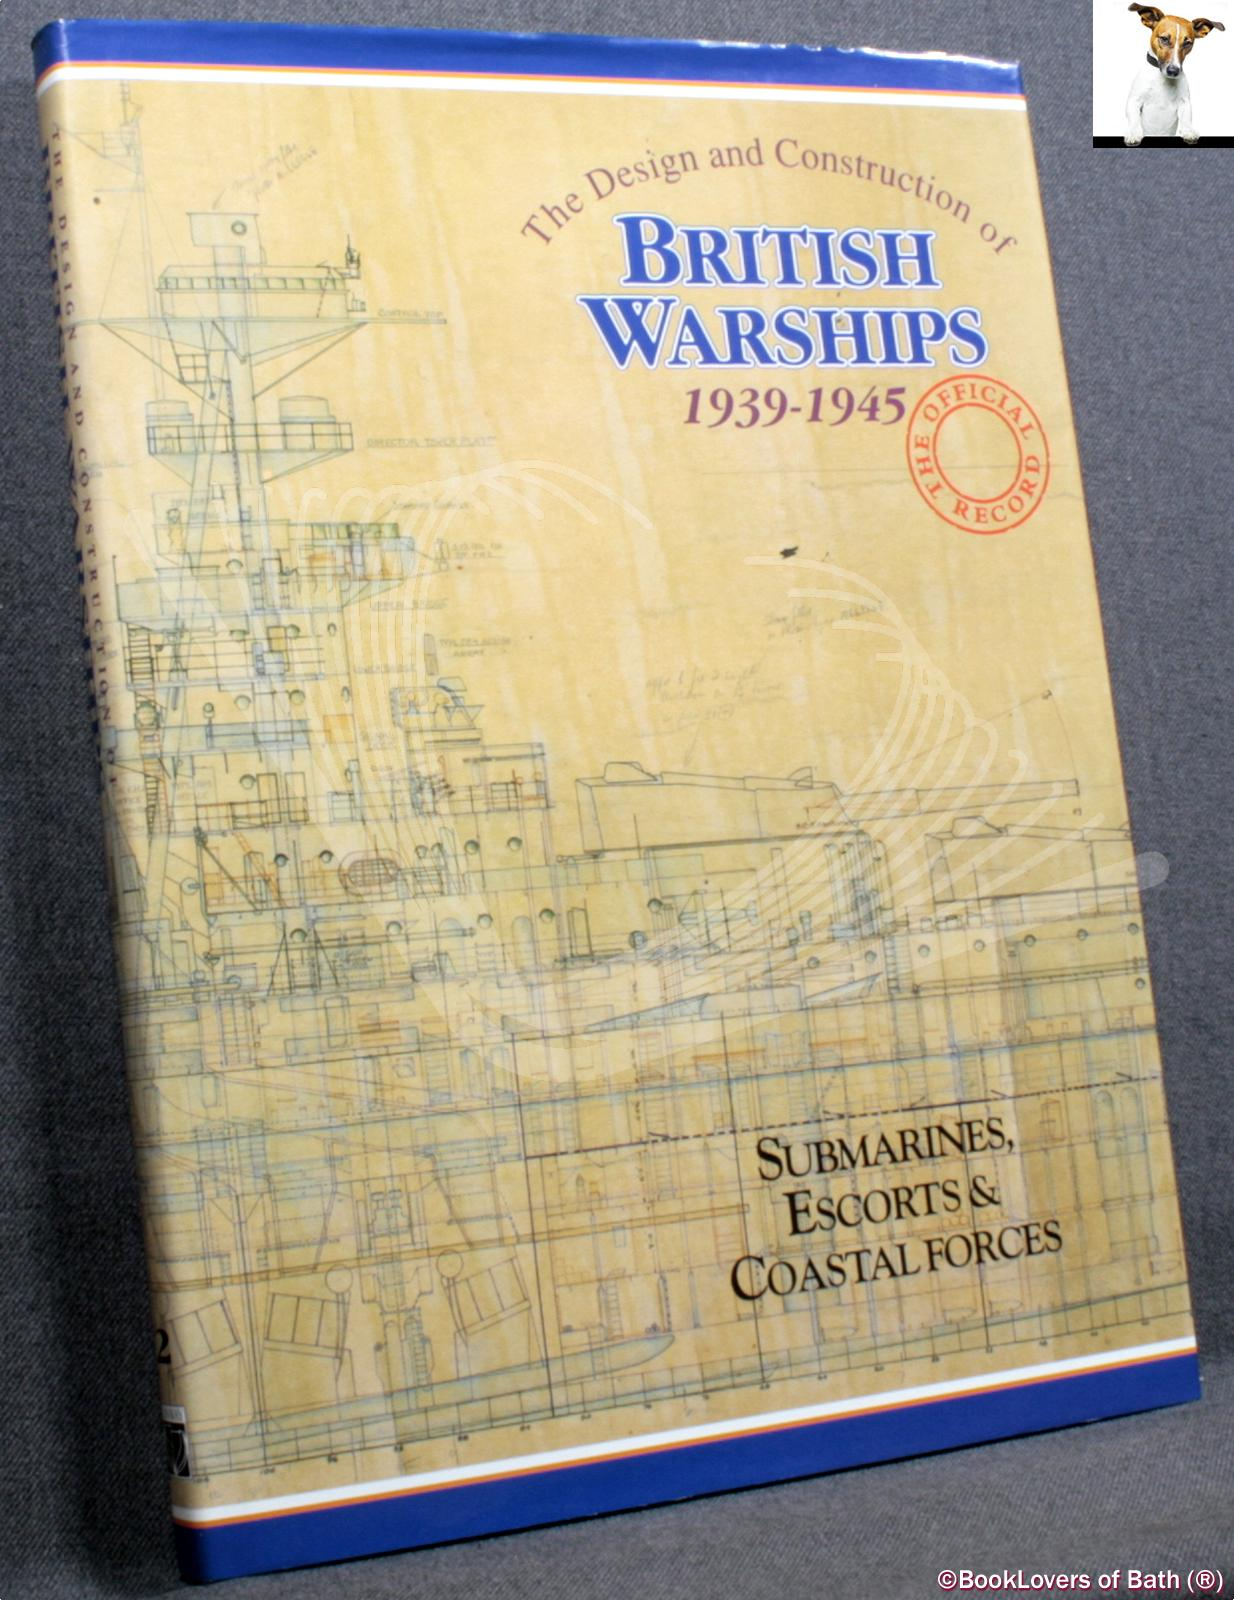 The Design and Construction of British Warships 1939-45: Submarines, Escorts & Coastal Forces - D. K. Brown